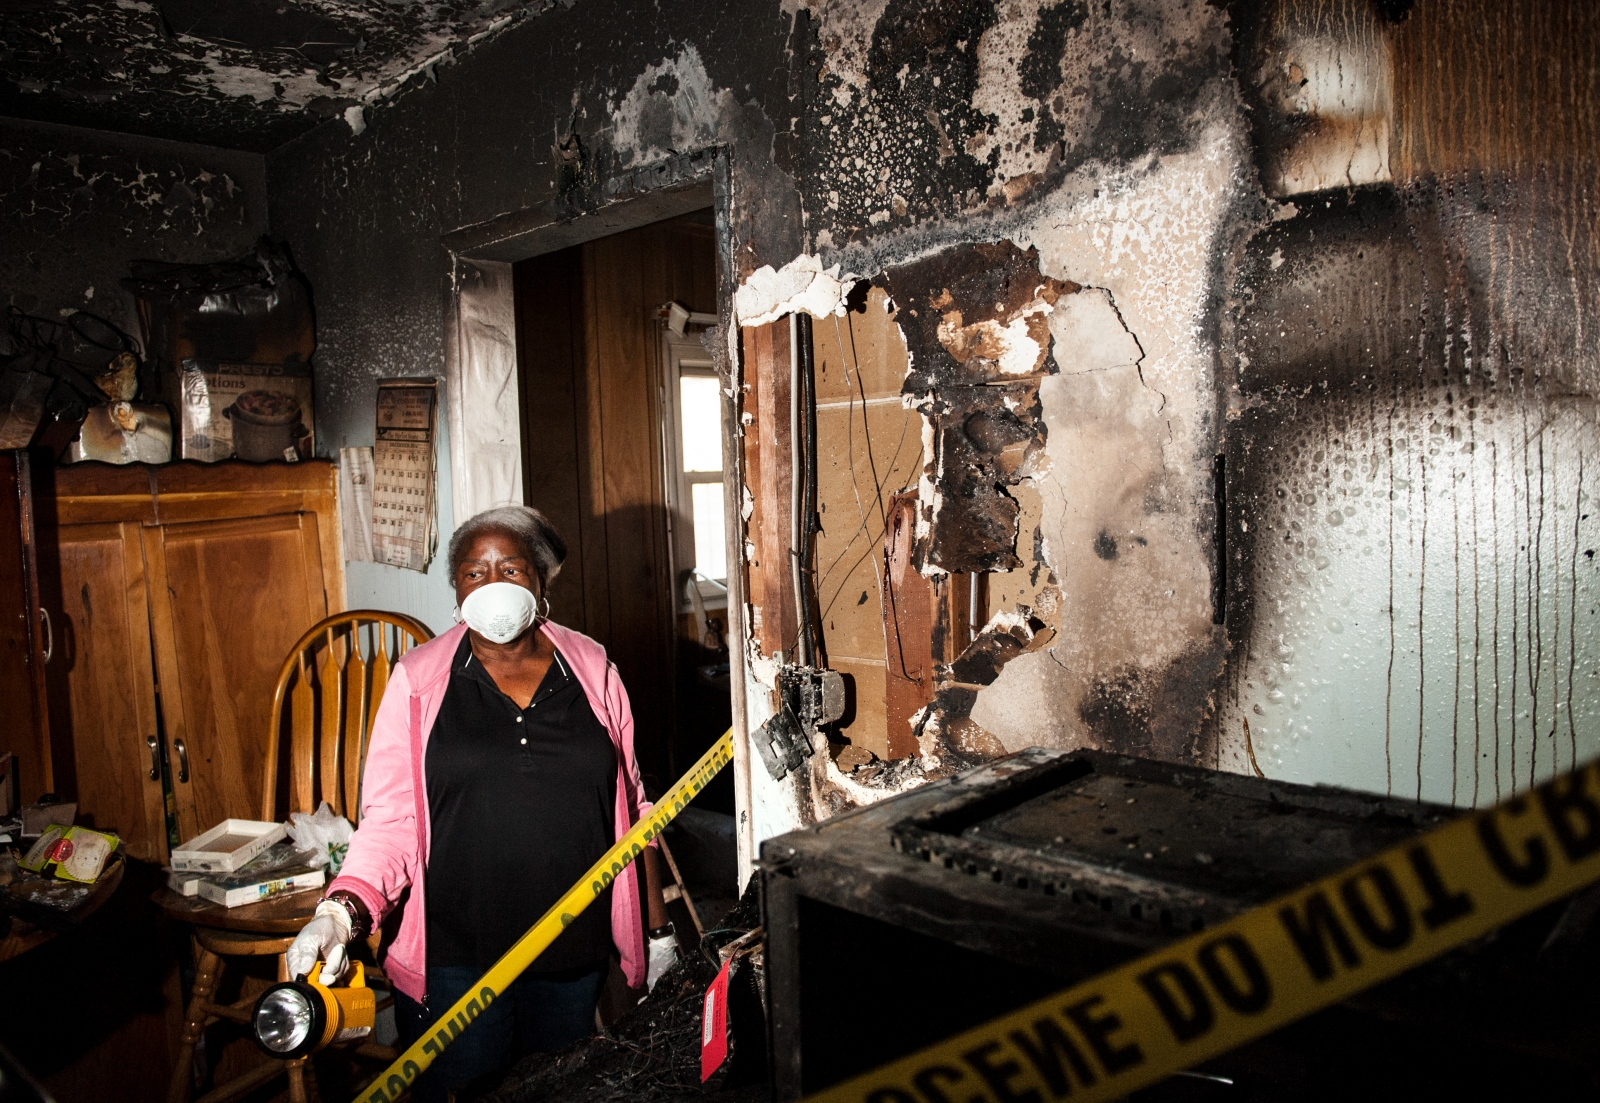 Dottie Mulkey, 74, walks through her damaged kitchen in Santa Ana after a December fire. Mulkey's homeowner's insurance had lapsed at the time of the blaze leaving her unable to restore her home.